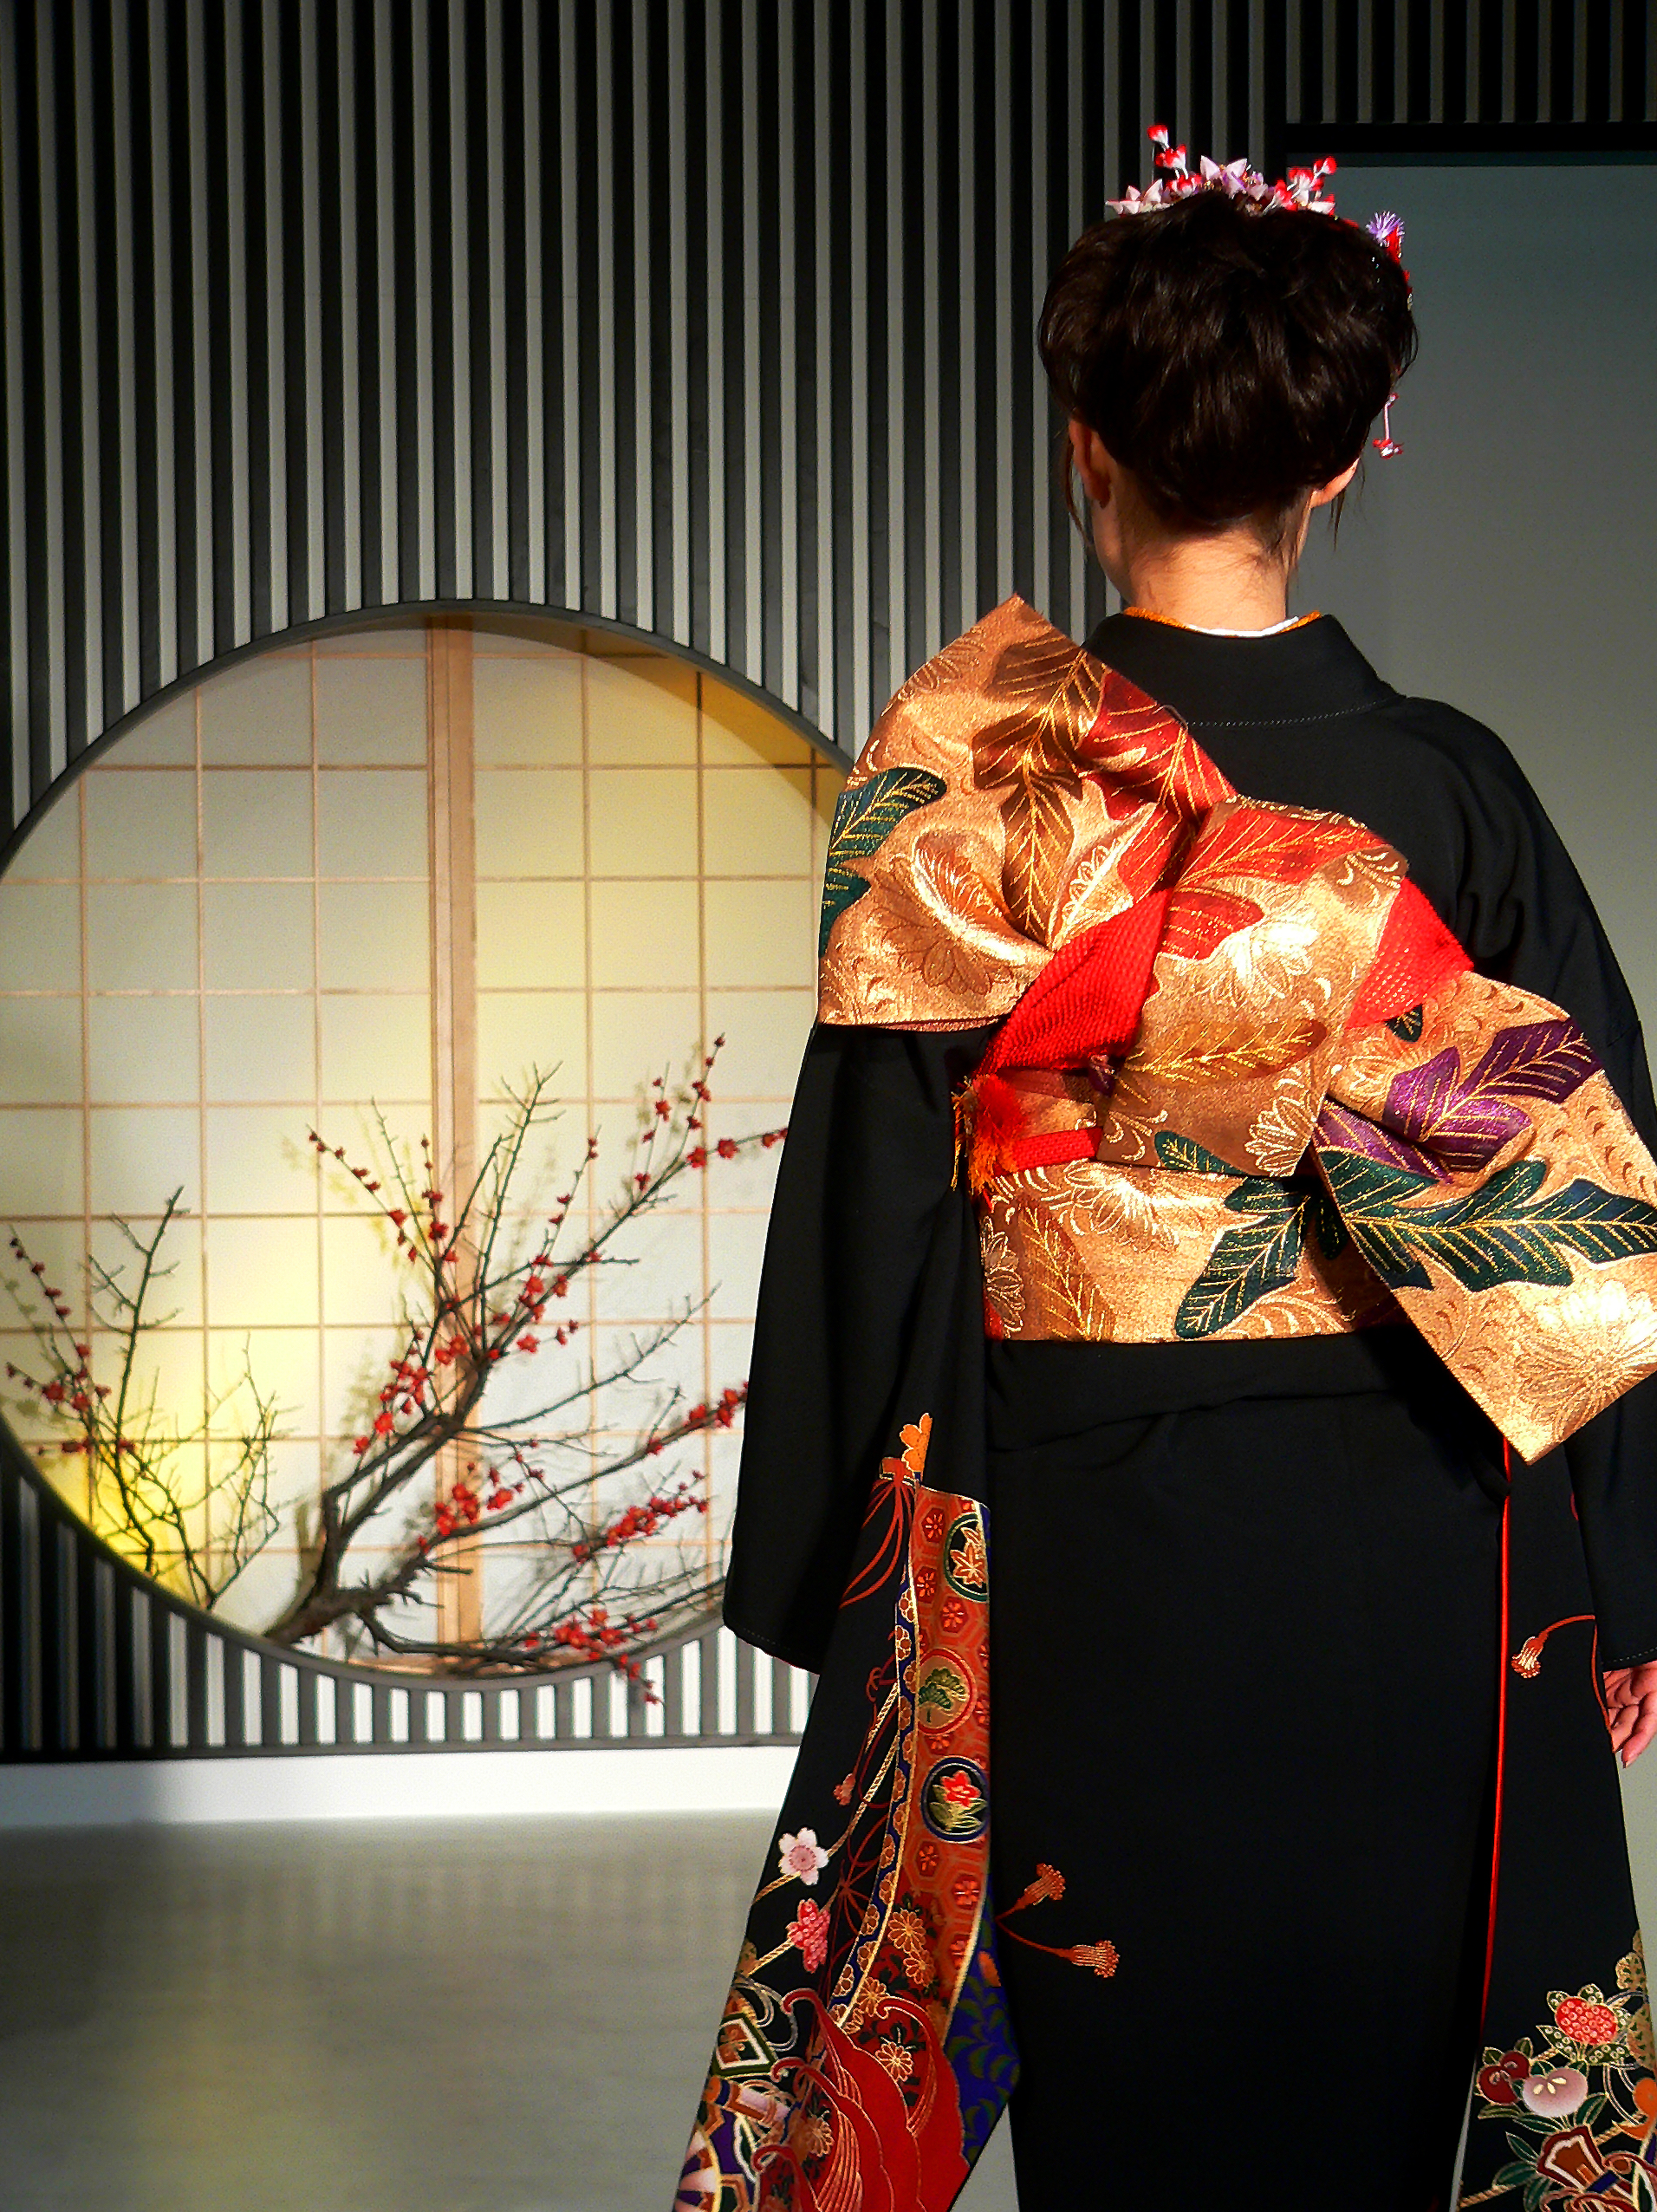 http://upload.wikimedia.org/wikipedia/commons/0/08/Kimono_backshot_by_sth.jpg